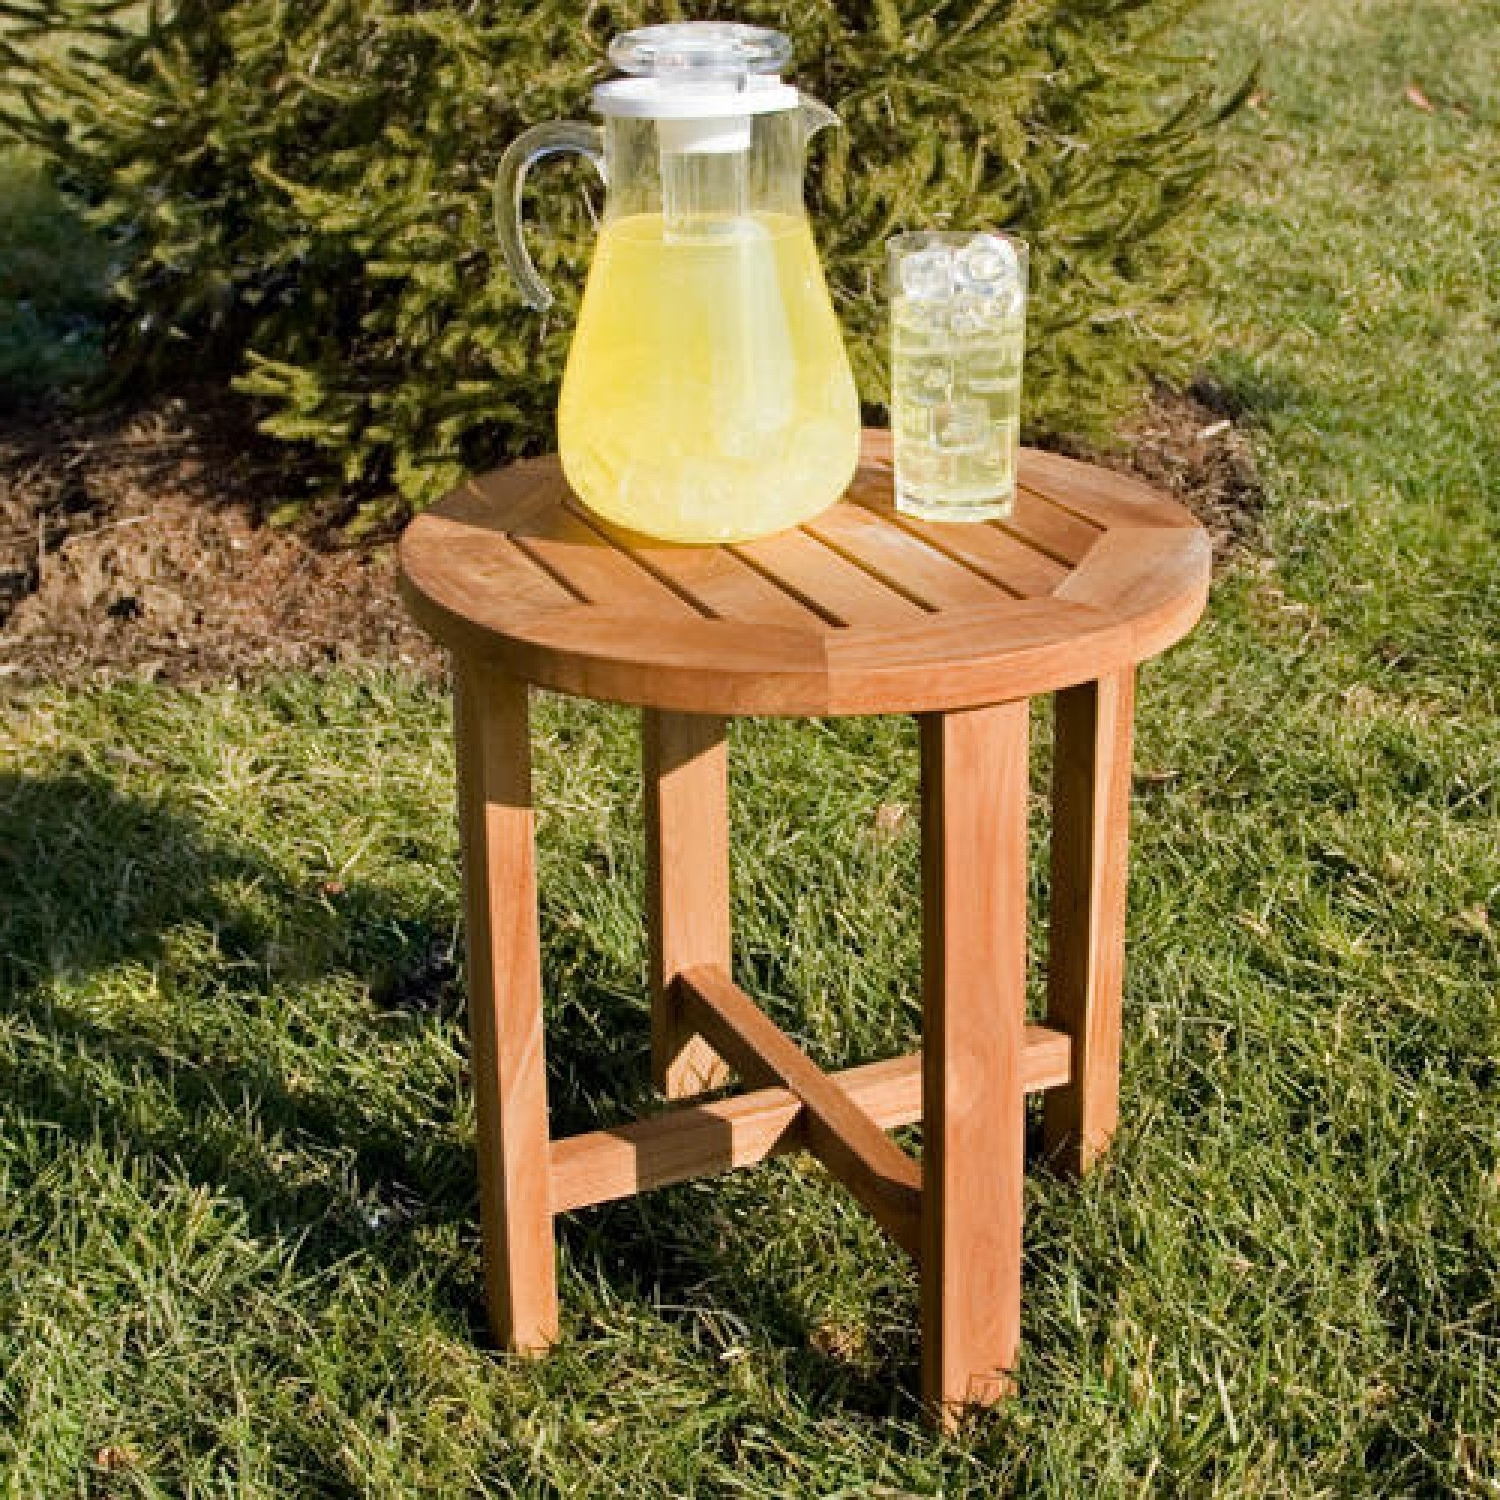 Tall Teak Coffee Table Outdoor — New Home Design : The Elegance Of Inside Famous Round Teak Coffee Tables (View 15 of 20)